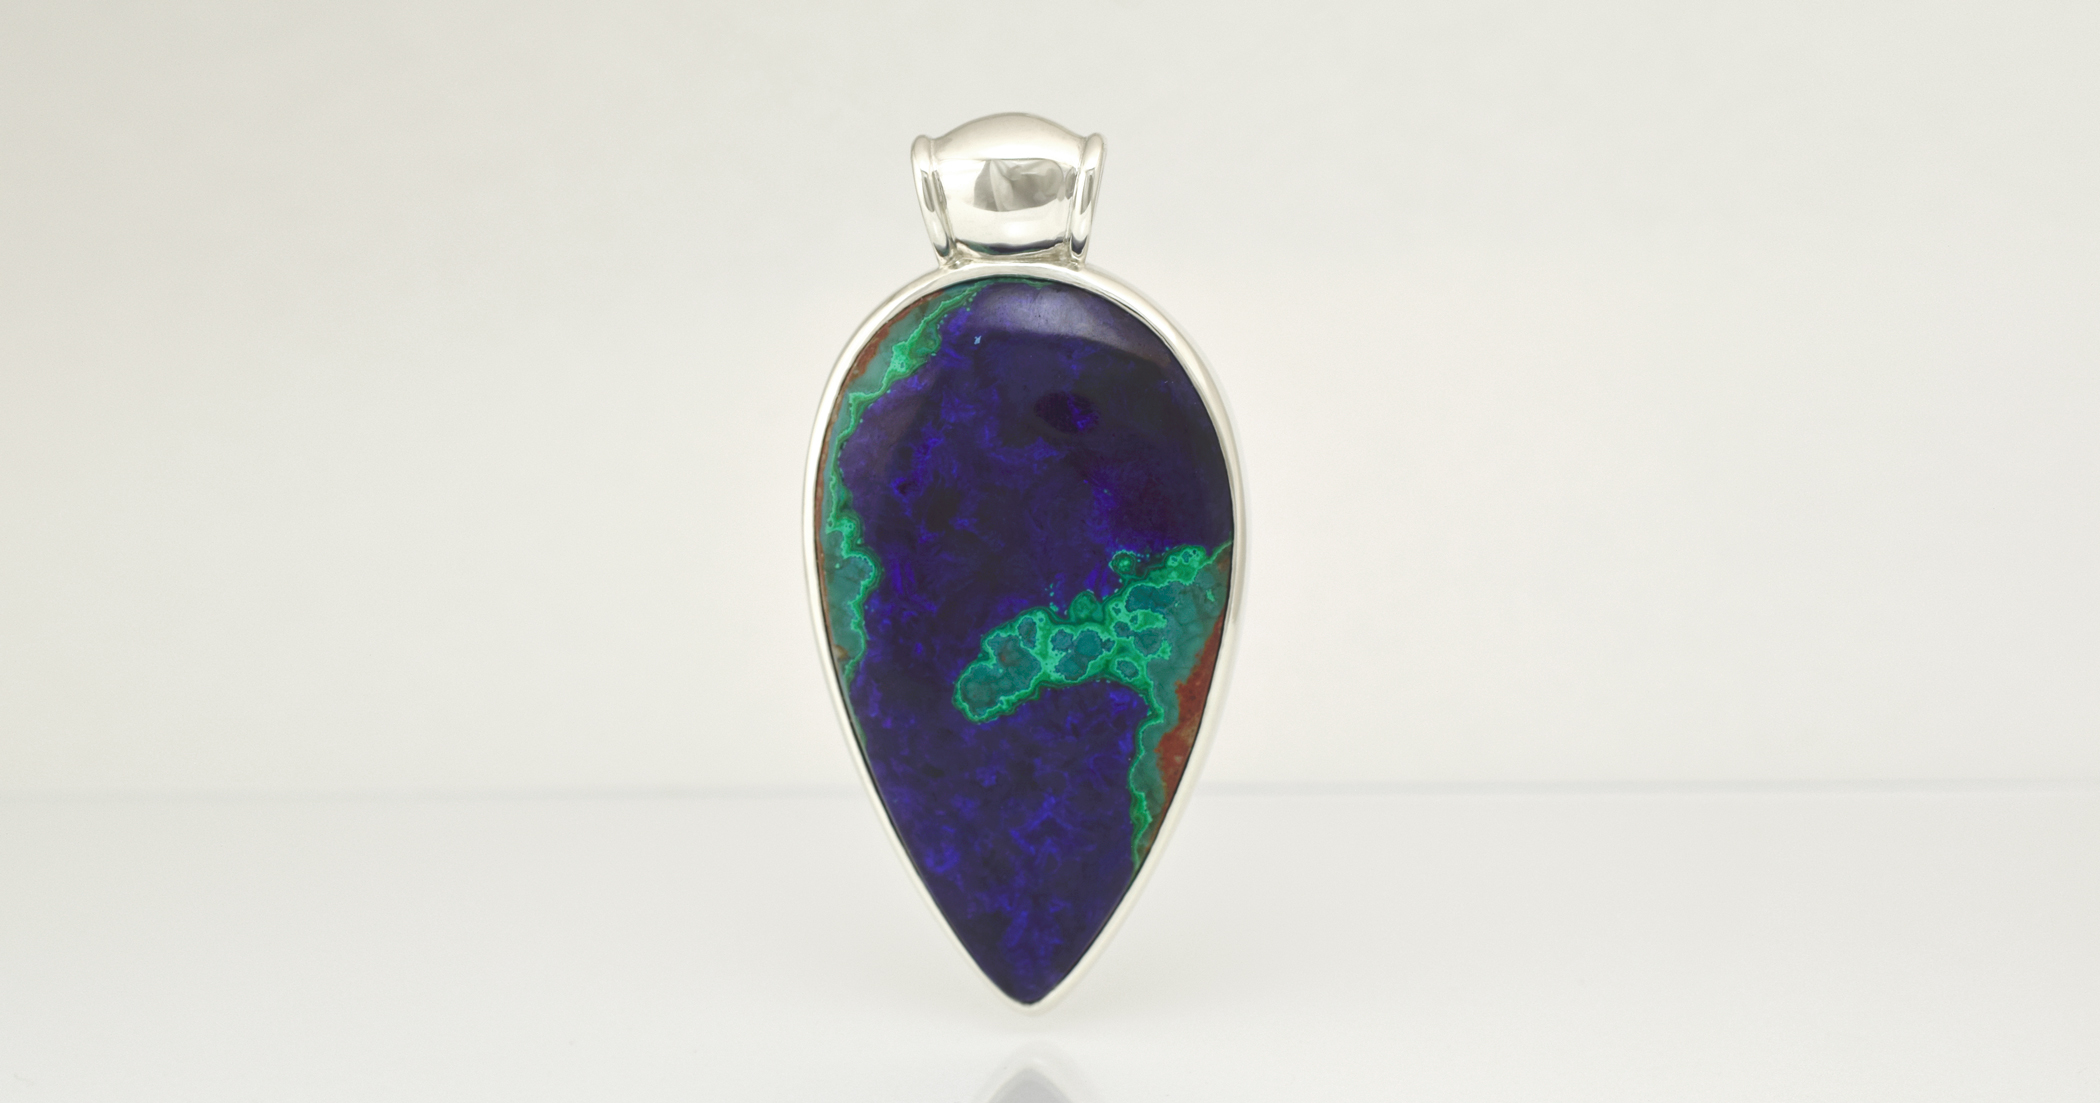 The gemstone is 85 carats and the pendant 6.3cm in length